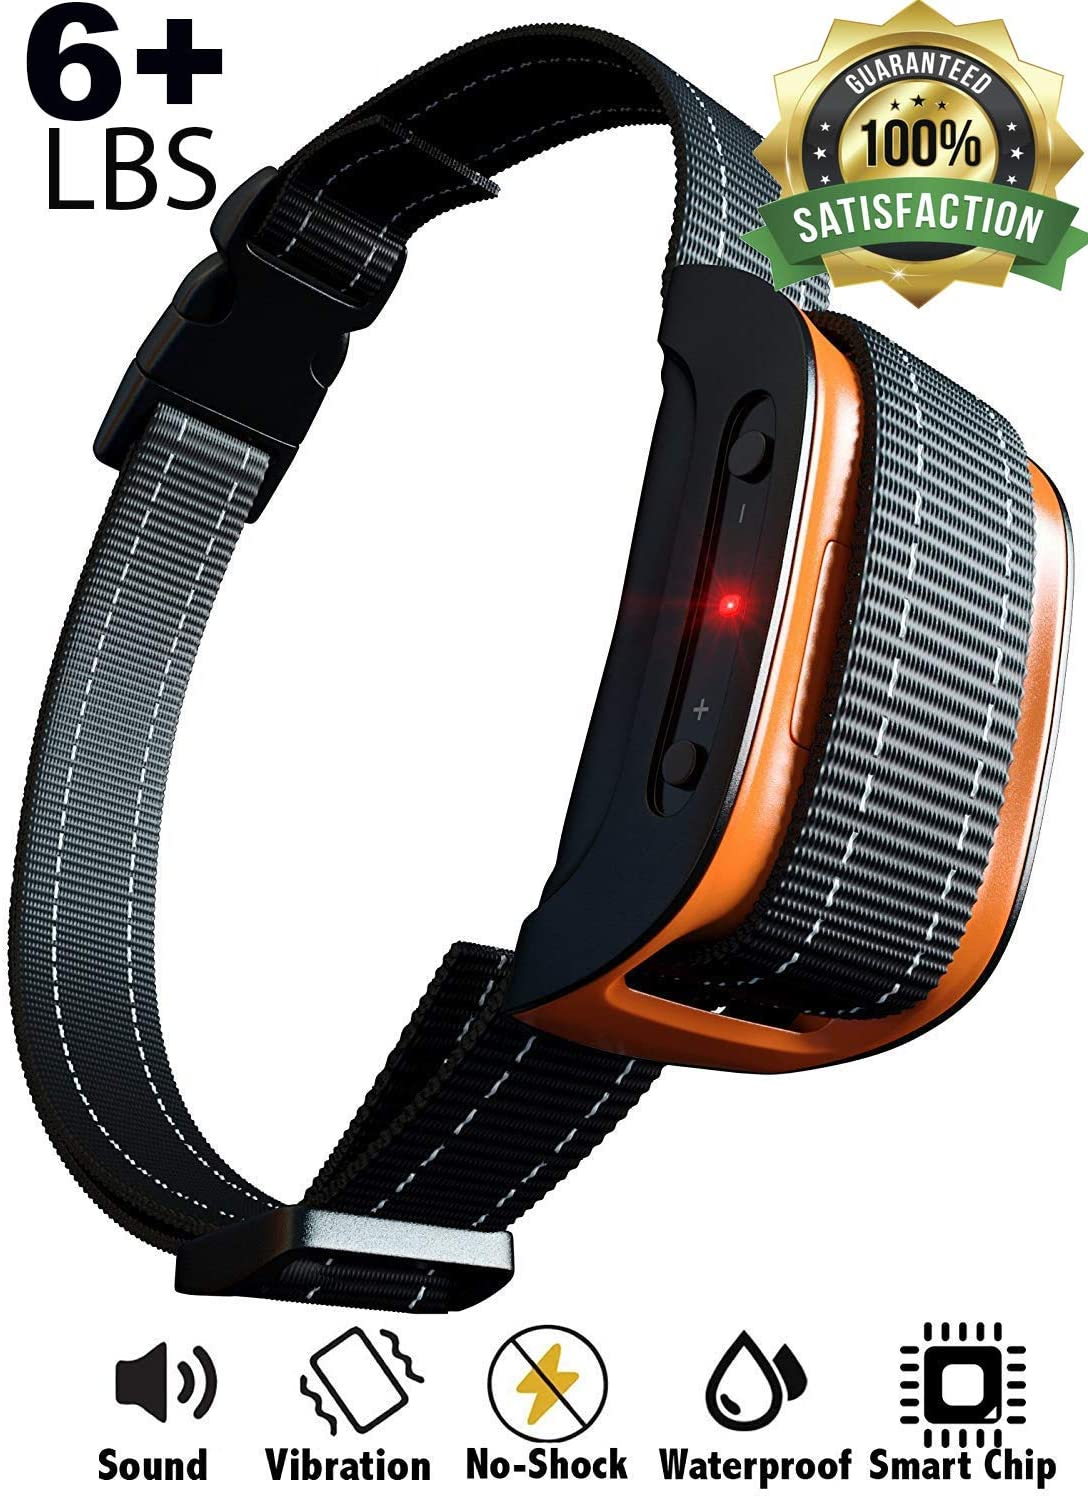 Bark Collar 2020 Superhuman CHIP Best for Small Medium Large Dogs, Most Effective Anti Bark Device 7 Sound and Vibro Modes, No Harmful Shock, No Pain for a Dog, Hypoallergenic Black Orange